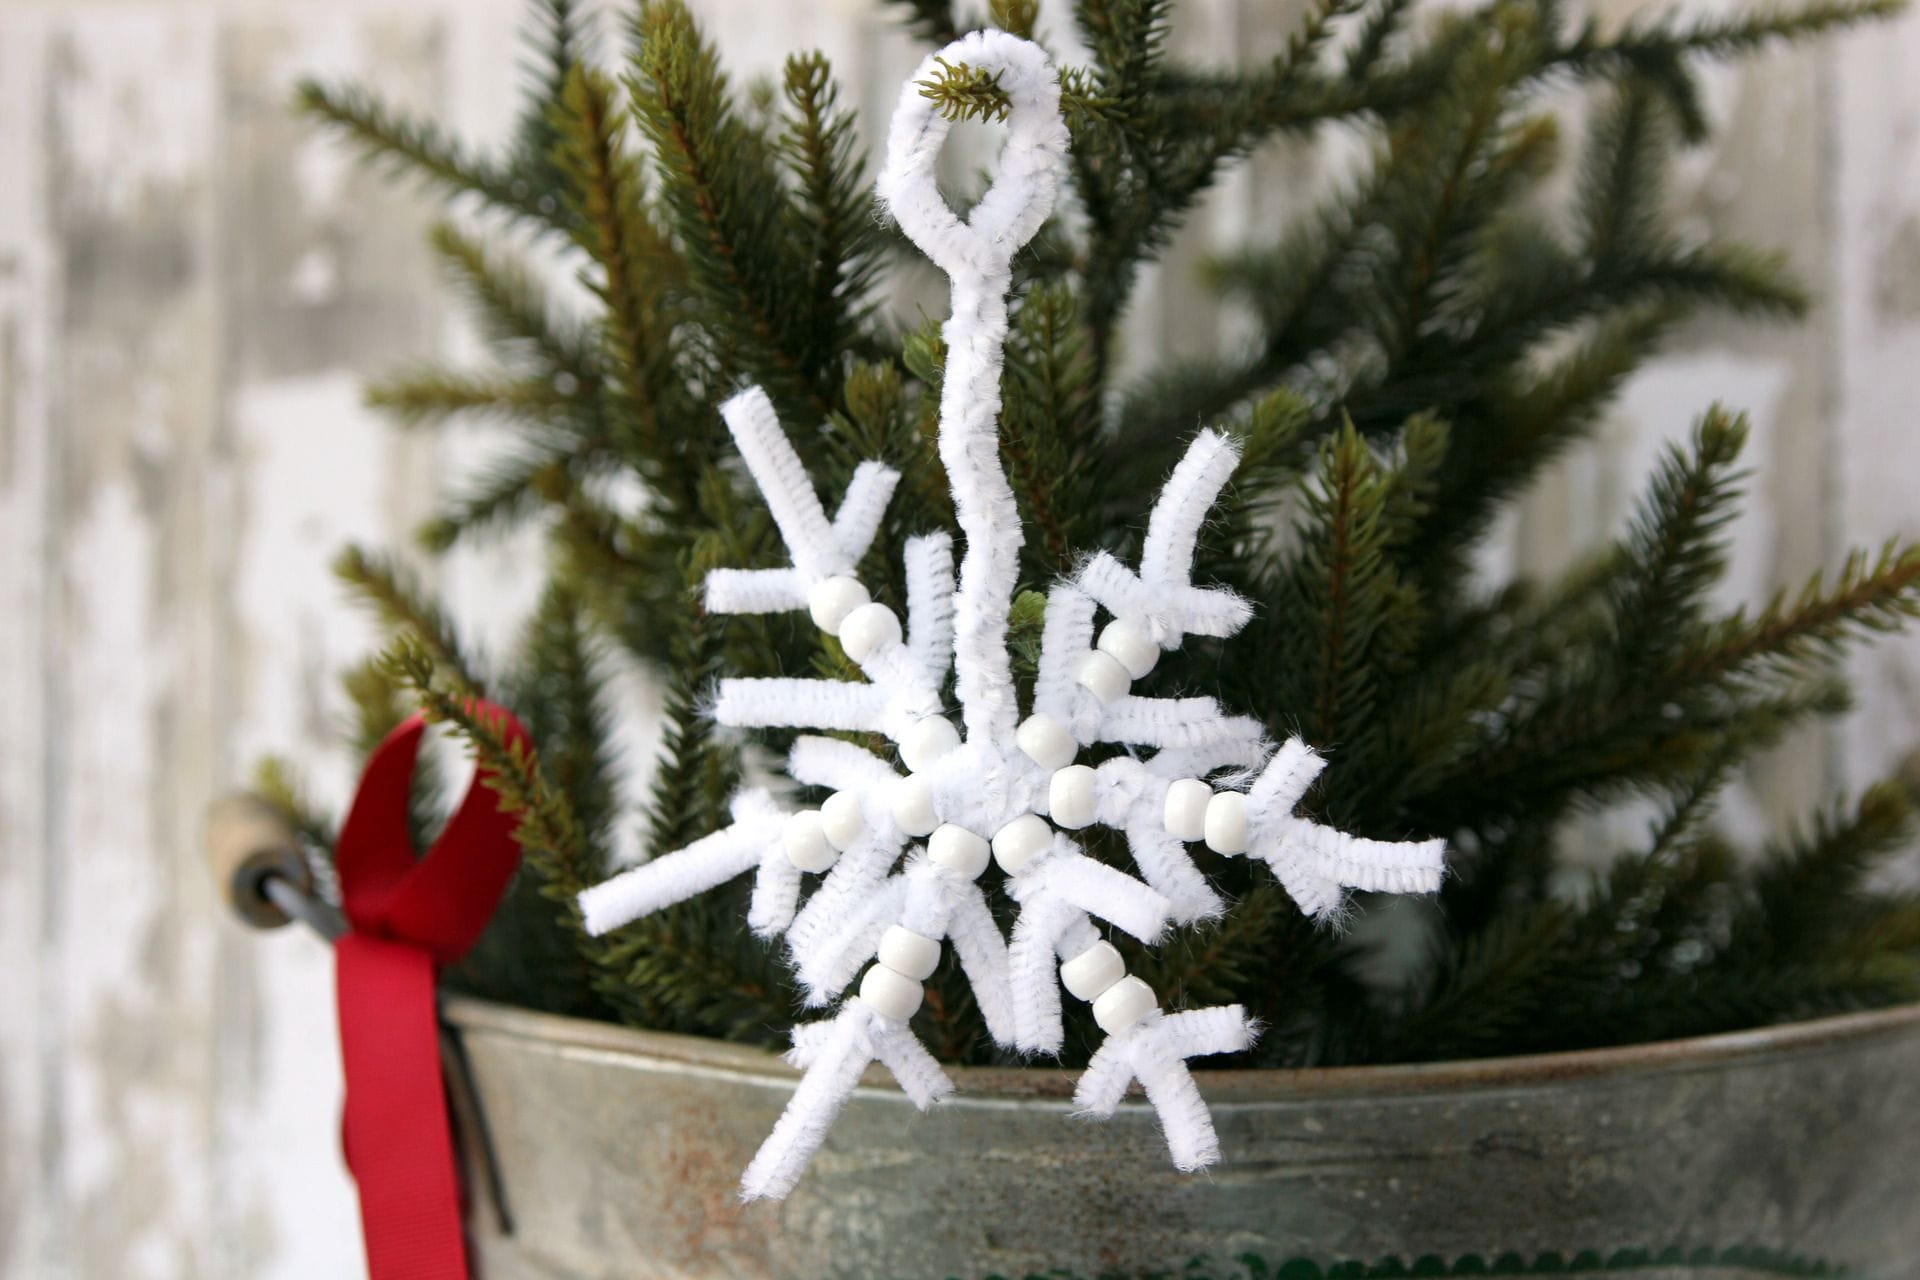 Pipe Cleaner Snowflake DIY Ornament project